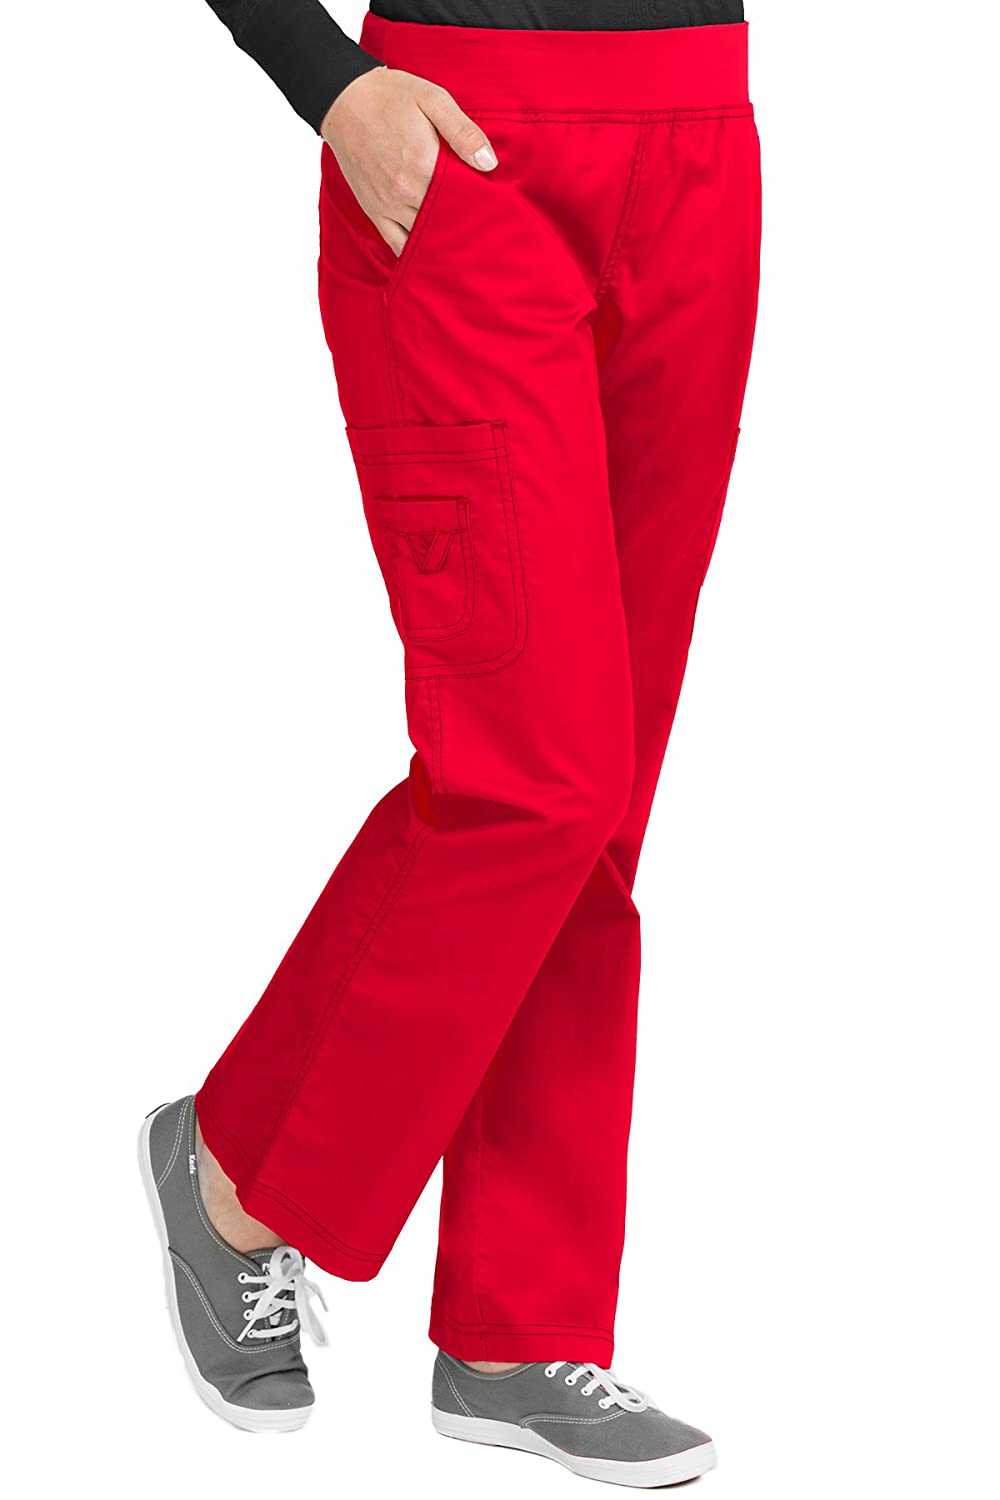 Med Couture Womens Scrub Bottoms Image 3